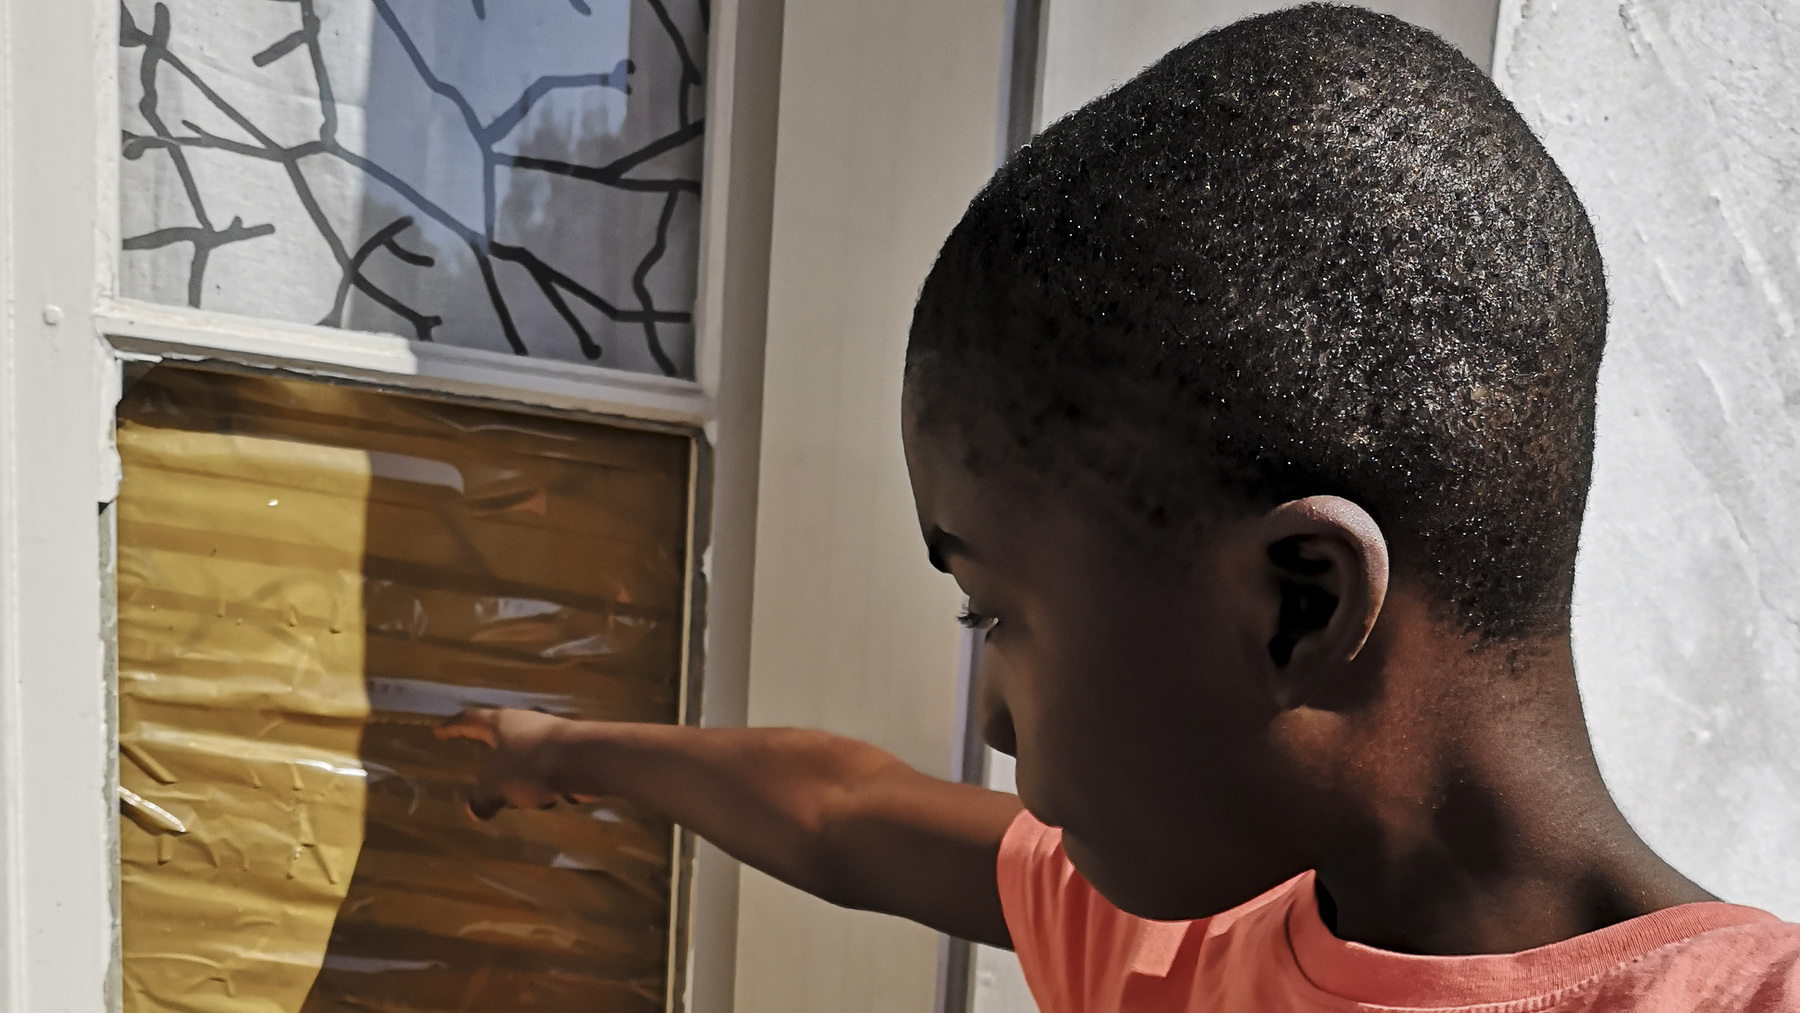 At the end of our sorrows : House renovations for families in France